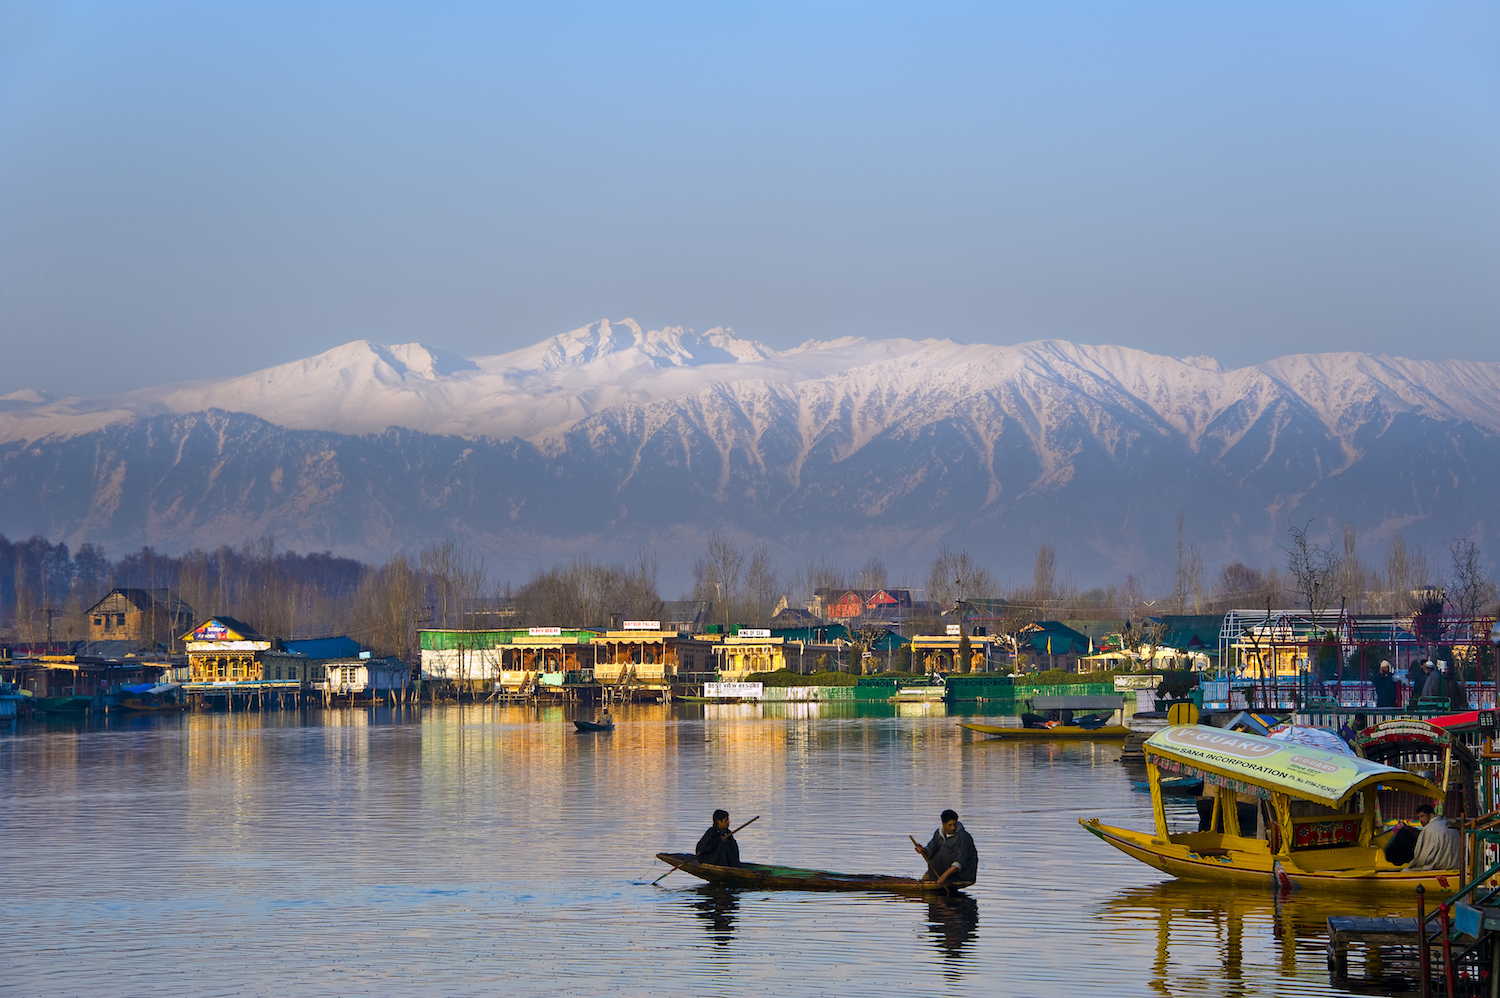 Srinagar - It's a foregone conclusion that you'll experience next level soreness after exploring the terrain around Gulmarg. Fortunately, Srinagar is a fine place to recuperate before your onward journey. At the family-owned New Jacquline Heritage Houseboats, you can relax on mountain shrouded Nageen Lake and sleep amid traditional Kashmiri design and decoration.The town has plenty of excellent dining options, and street food lovers will be delighted by the kebab stalls at Kahayam Chowk. Juicy, charcoal grilled meat kebabs are served on traditional lavasa bread, along with a dozen different types of condiments. Chai Jaai is a gorgeous English-inspired tea house to wile away an afternoon of mountain recovery and reflection.